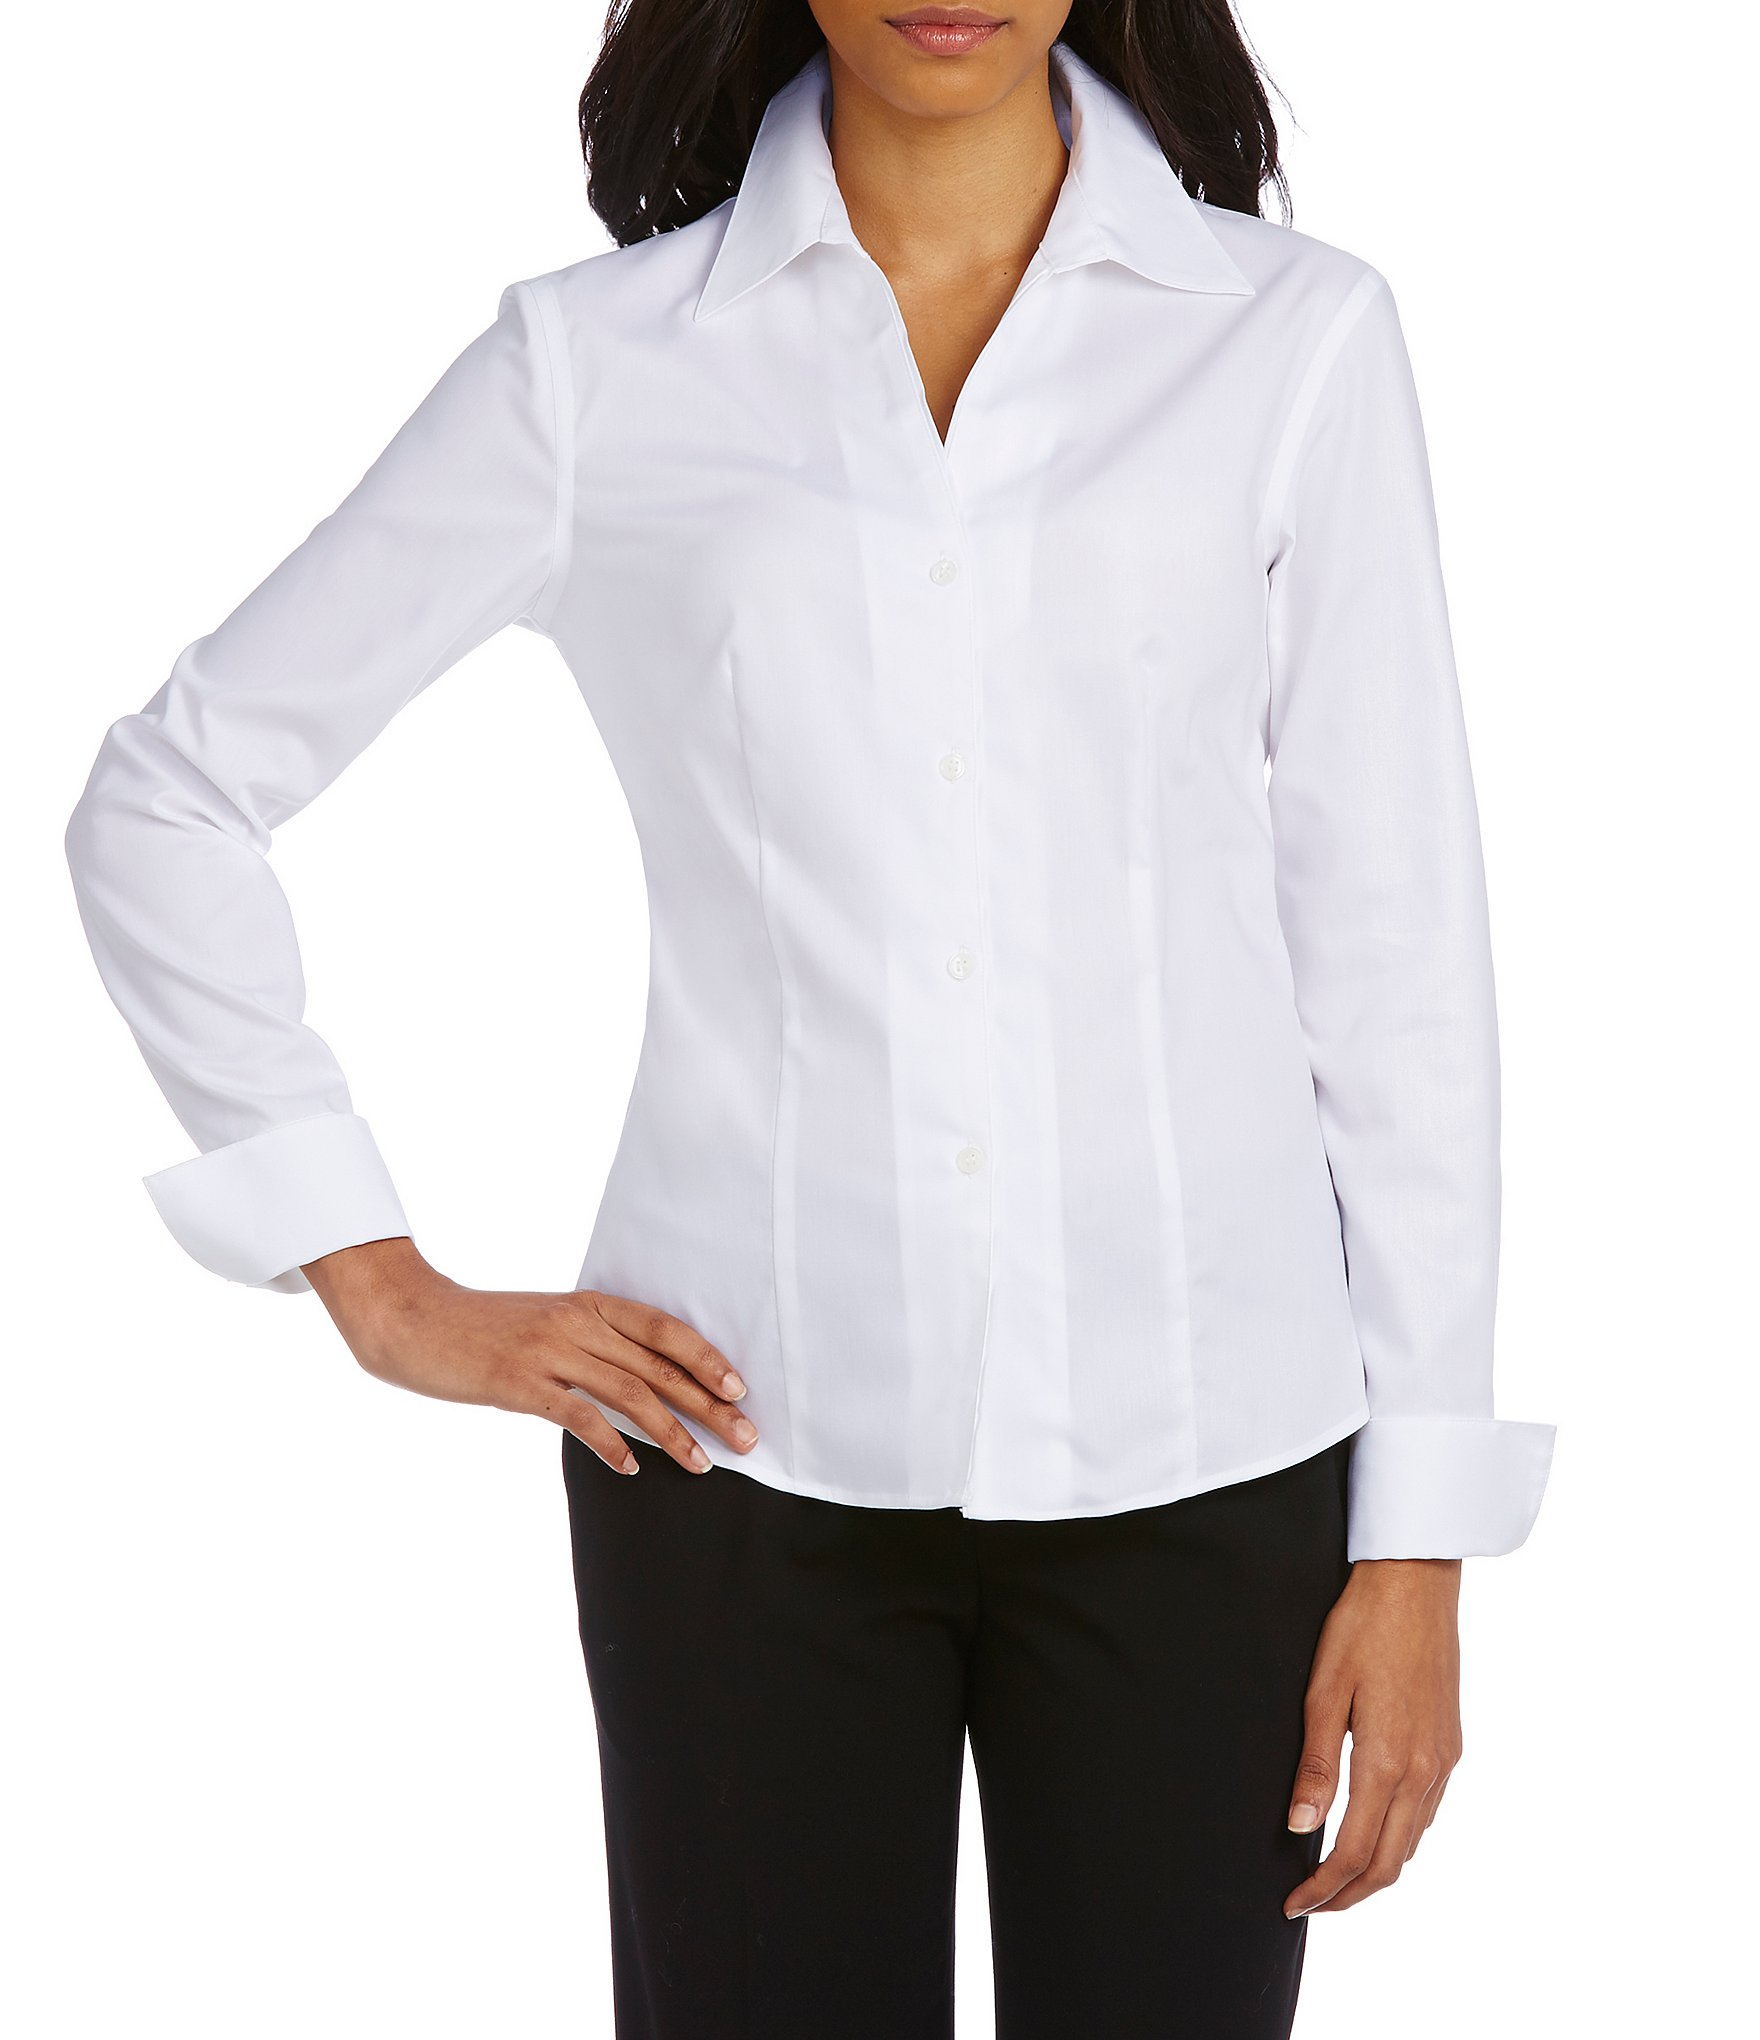 Different ways to wear a white blouse